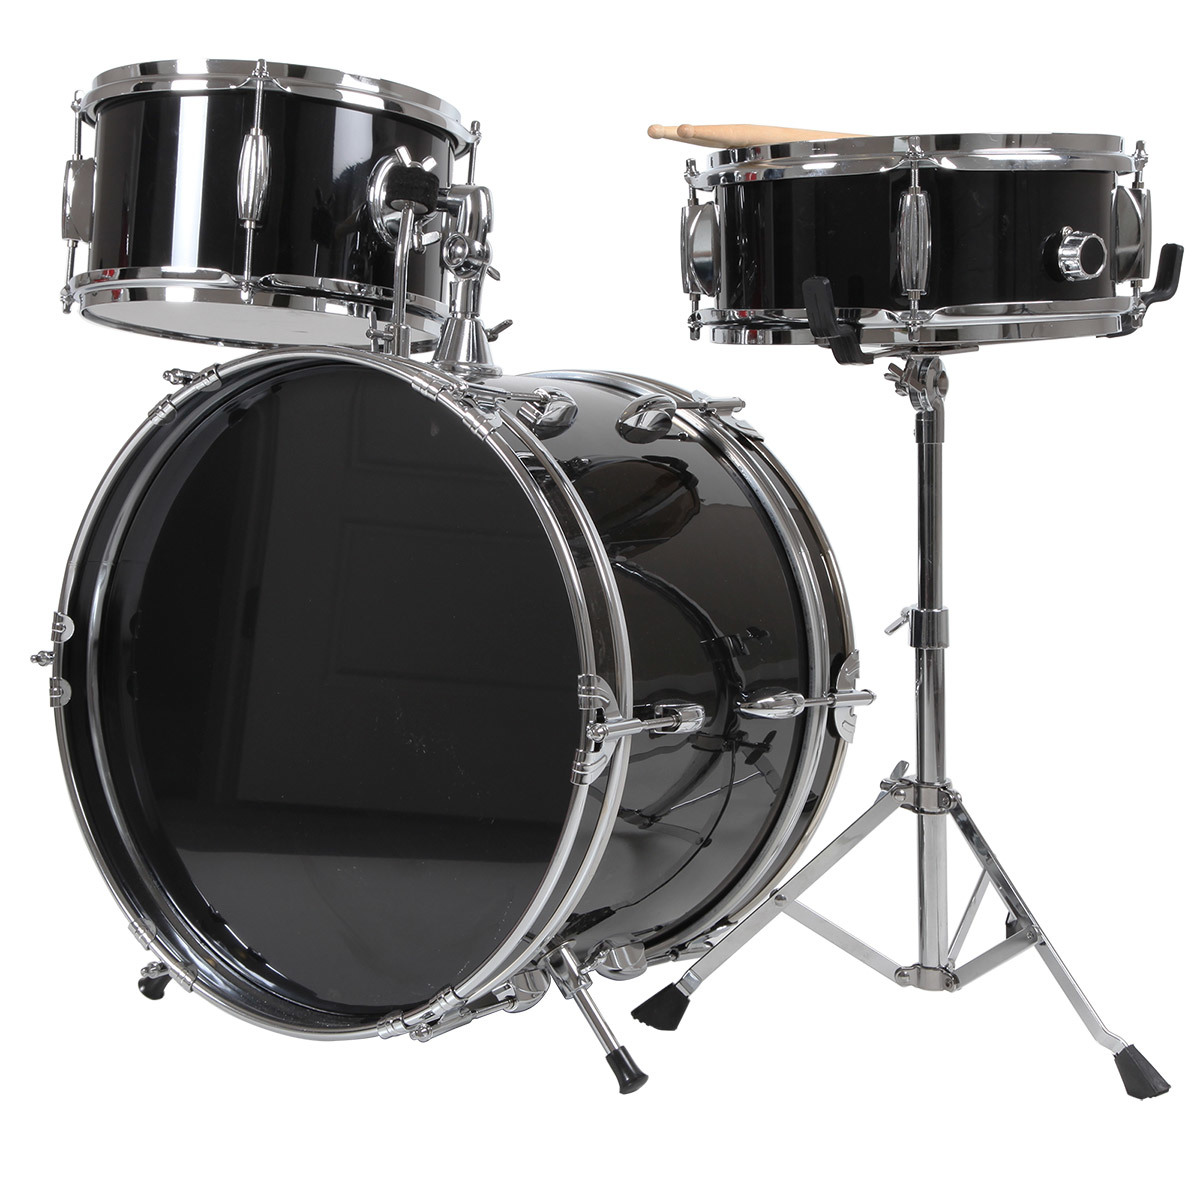 3-Pc Junior Drum Kit, Black for Beginners by X8 Drums